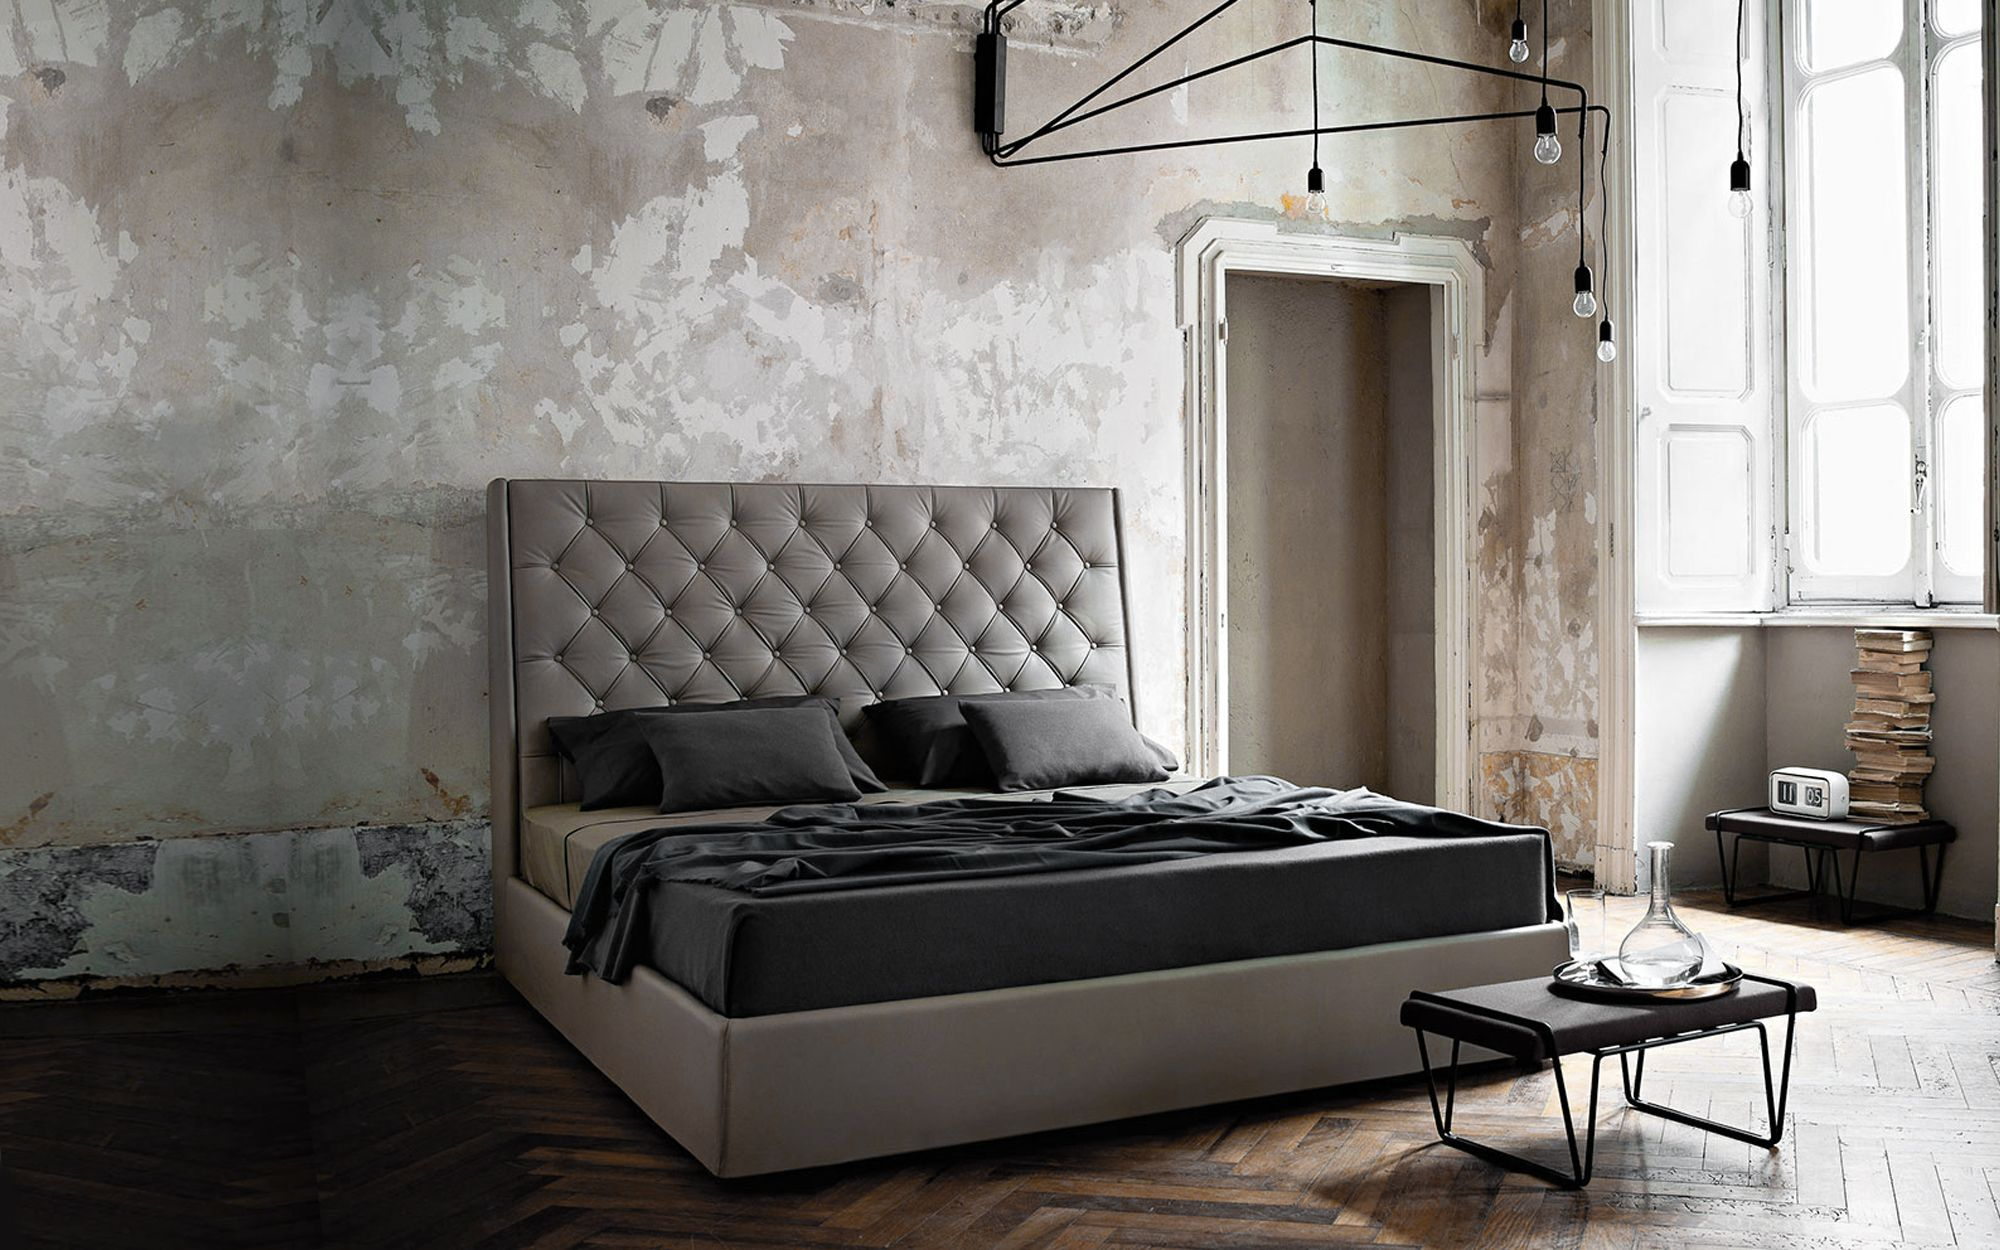 Beds at Pure Interiors